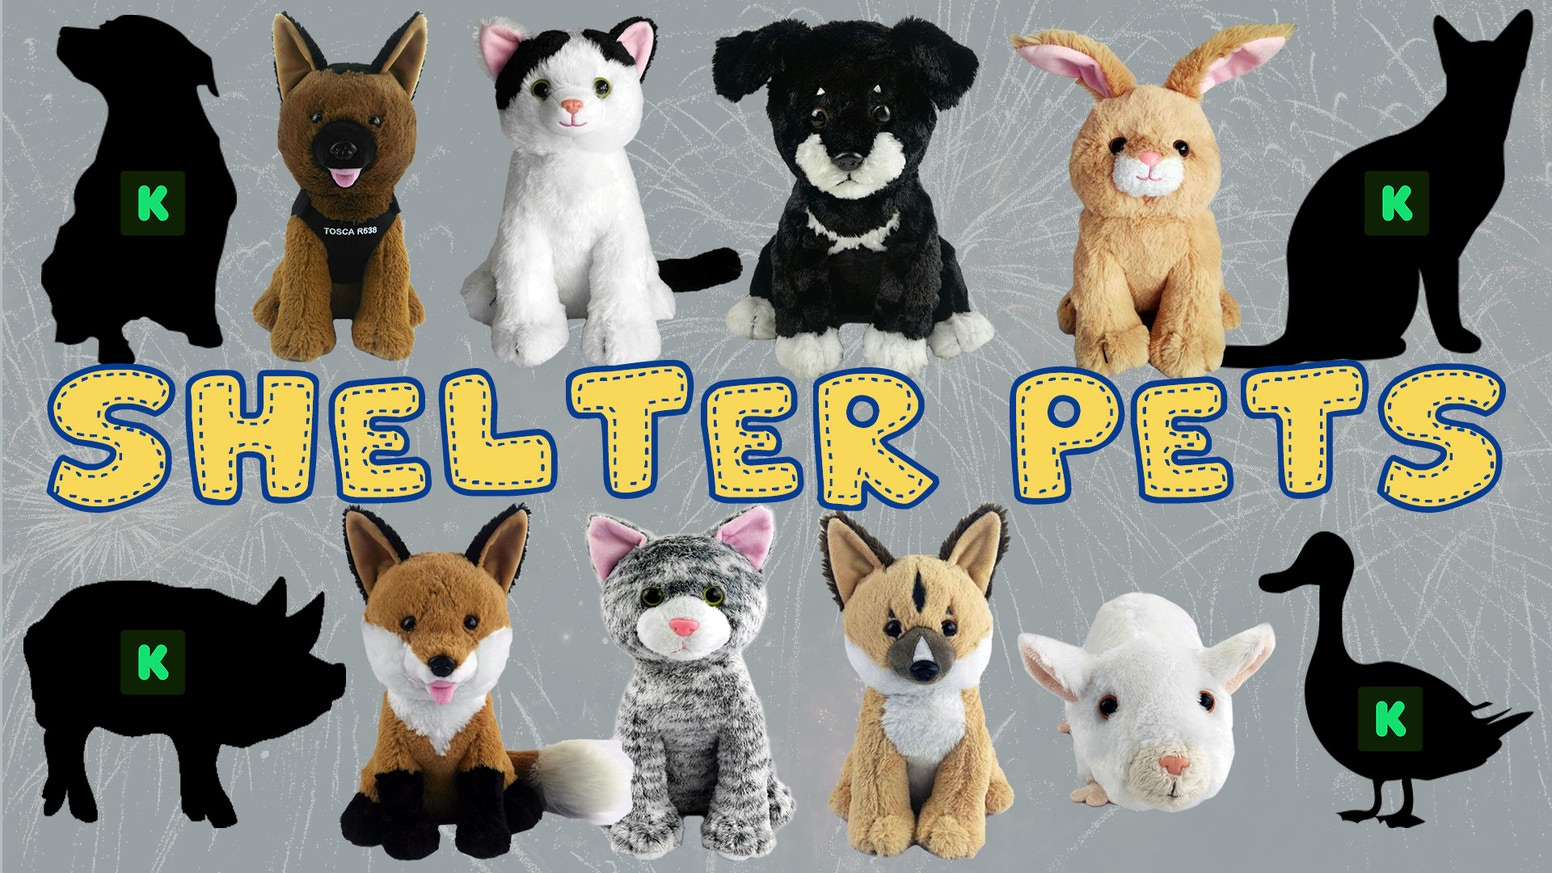 Thank you for successfully funding Shelter Pets! You can now order your own at shelterpetsonline.com/shop